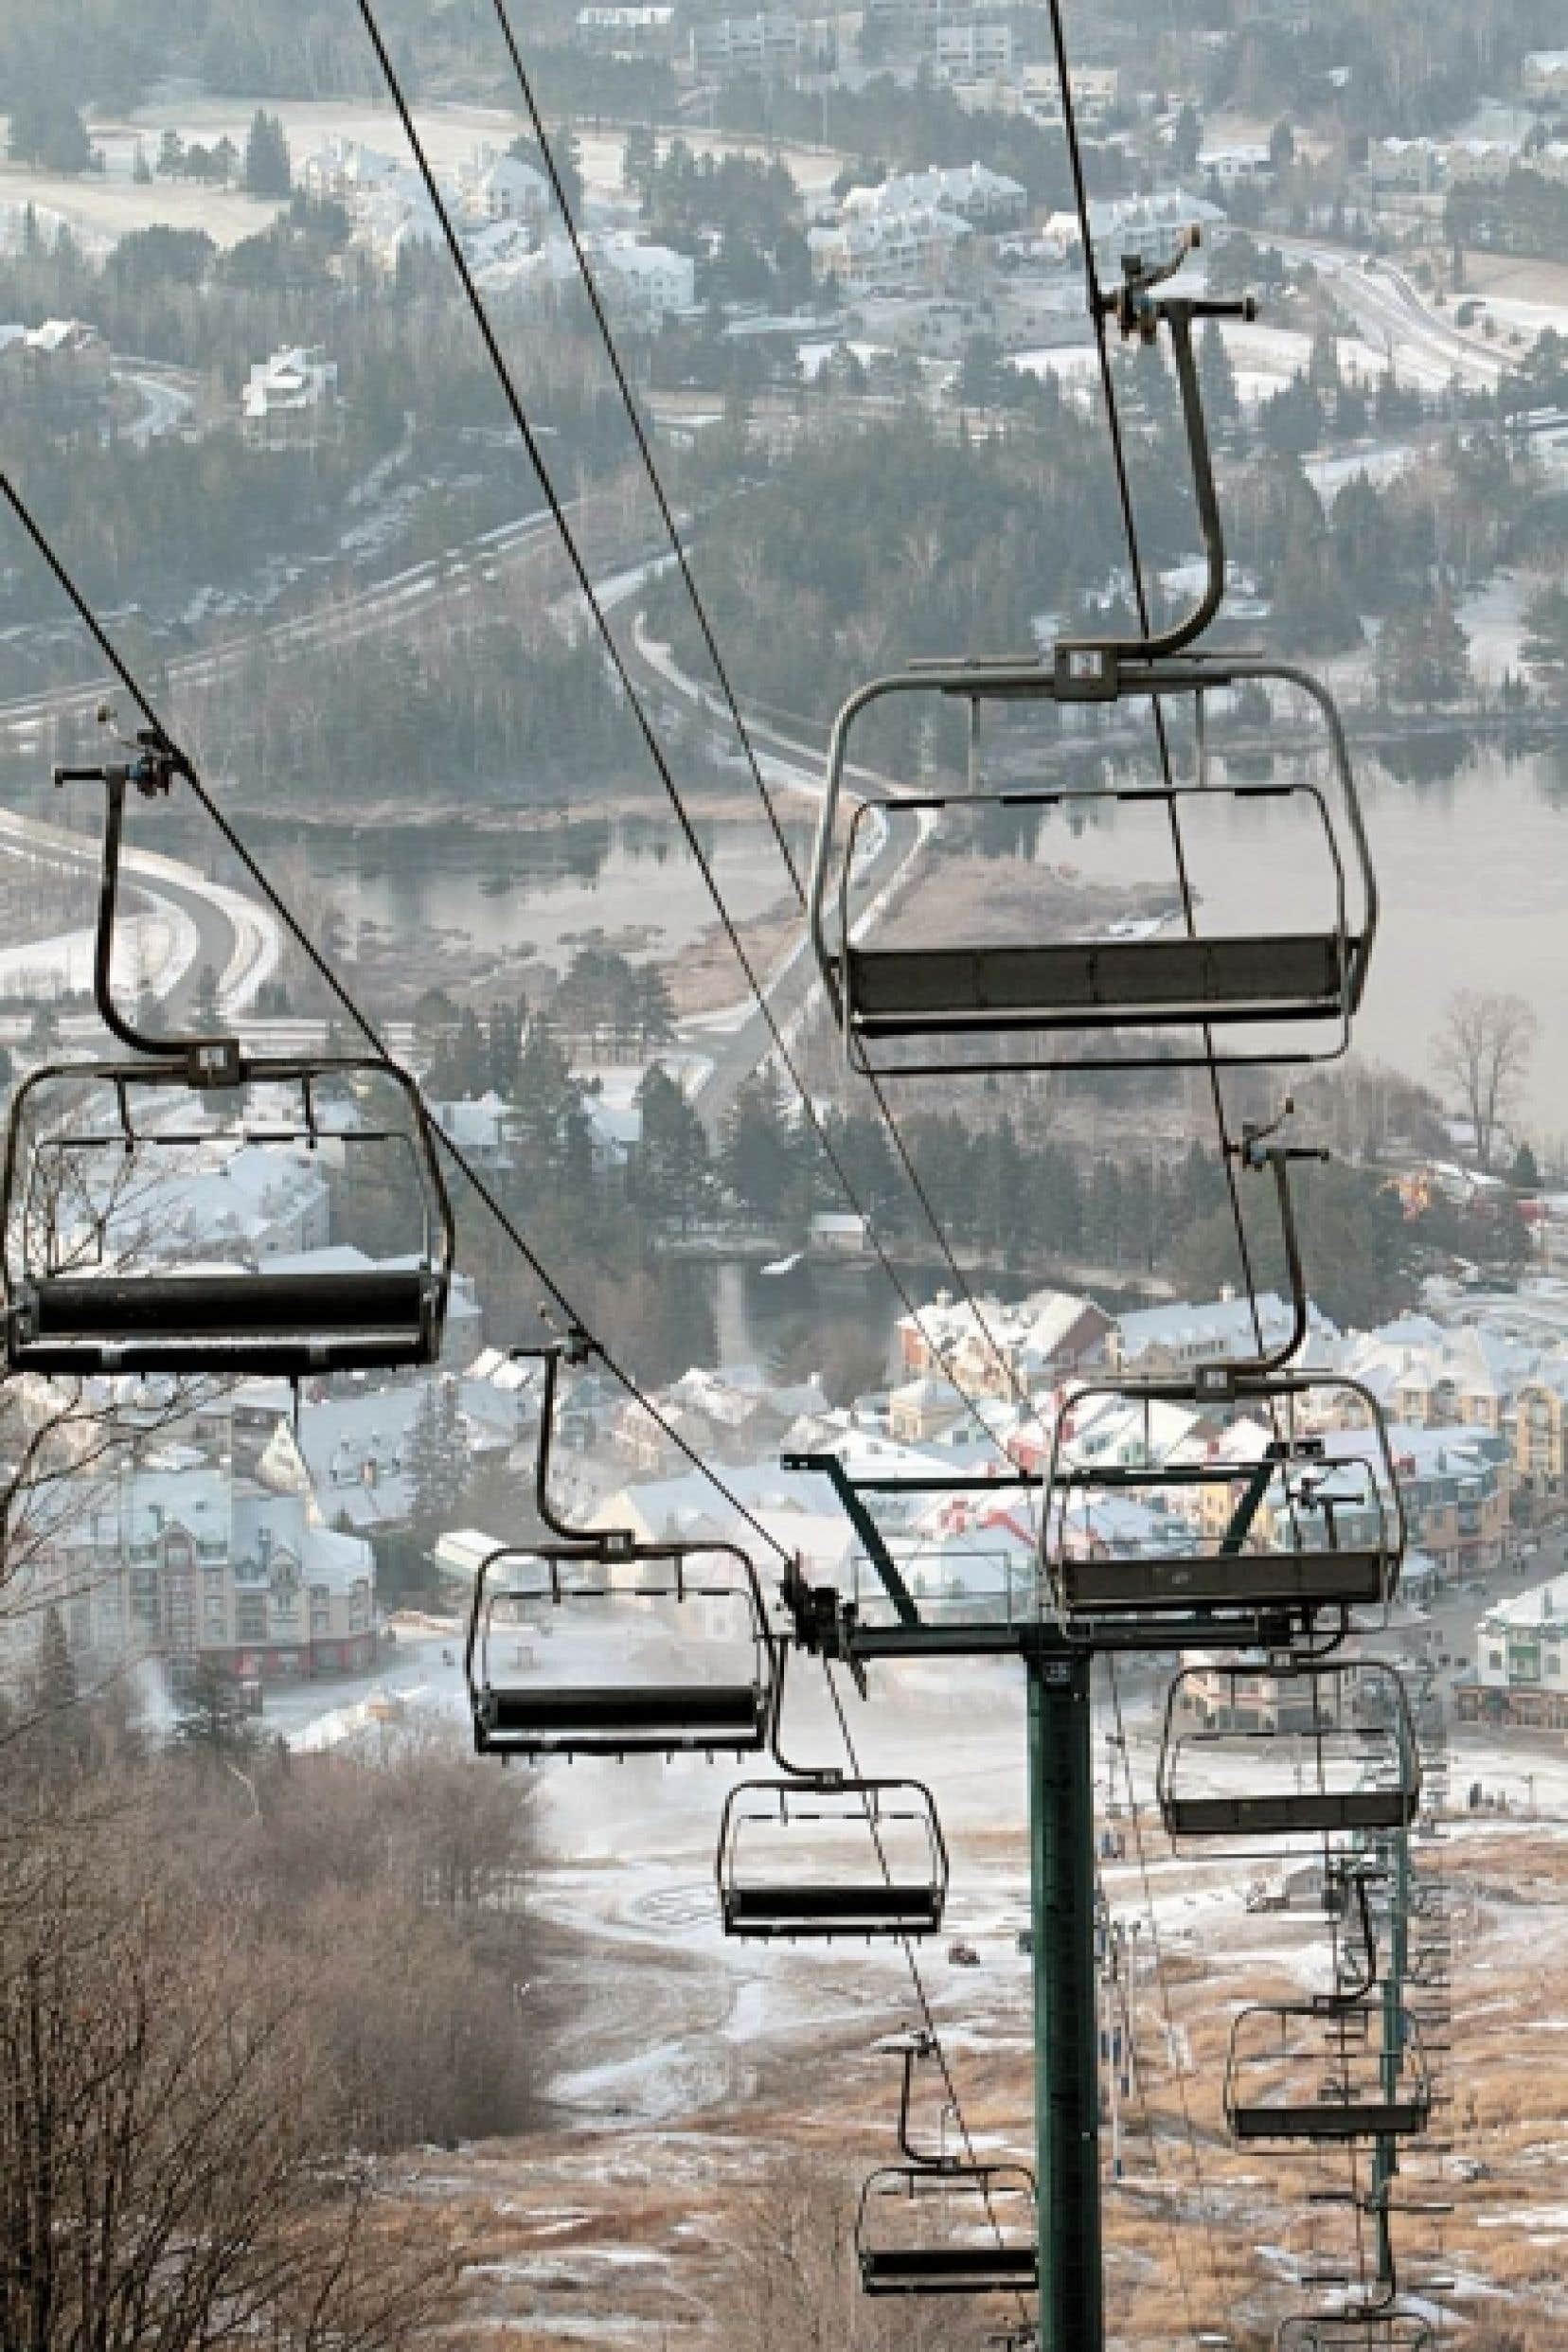 Intrawest exploite la station de ski Mont-Tremblant depuis son acquisition en 1991.